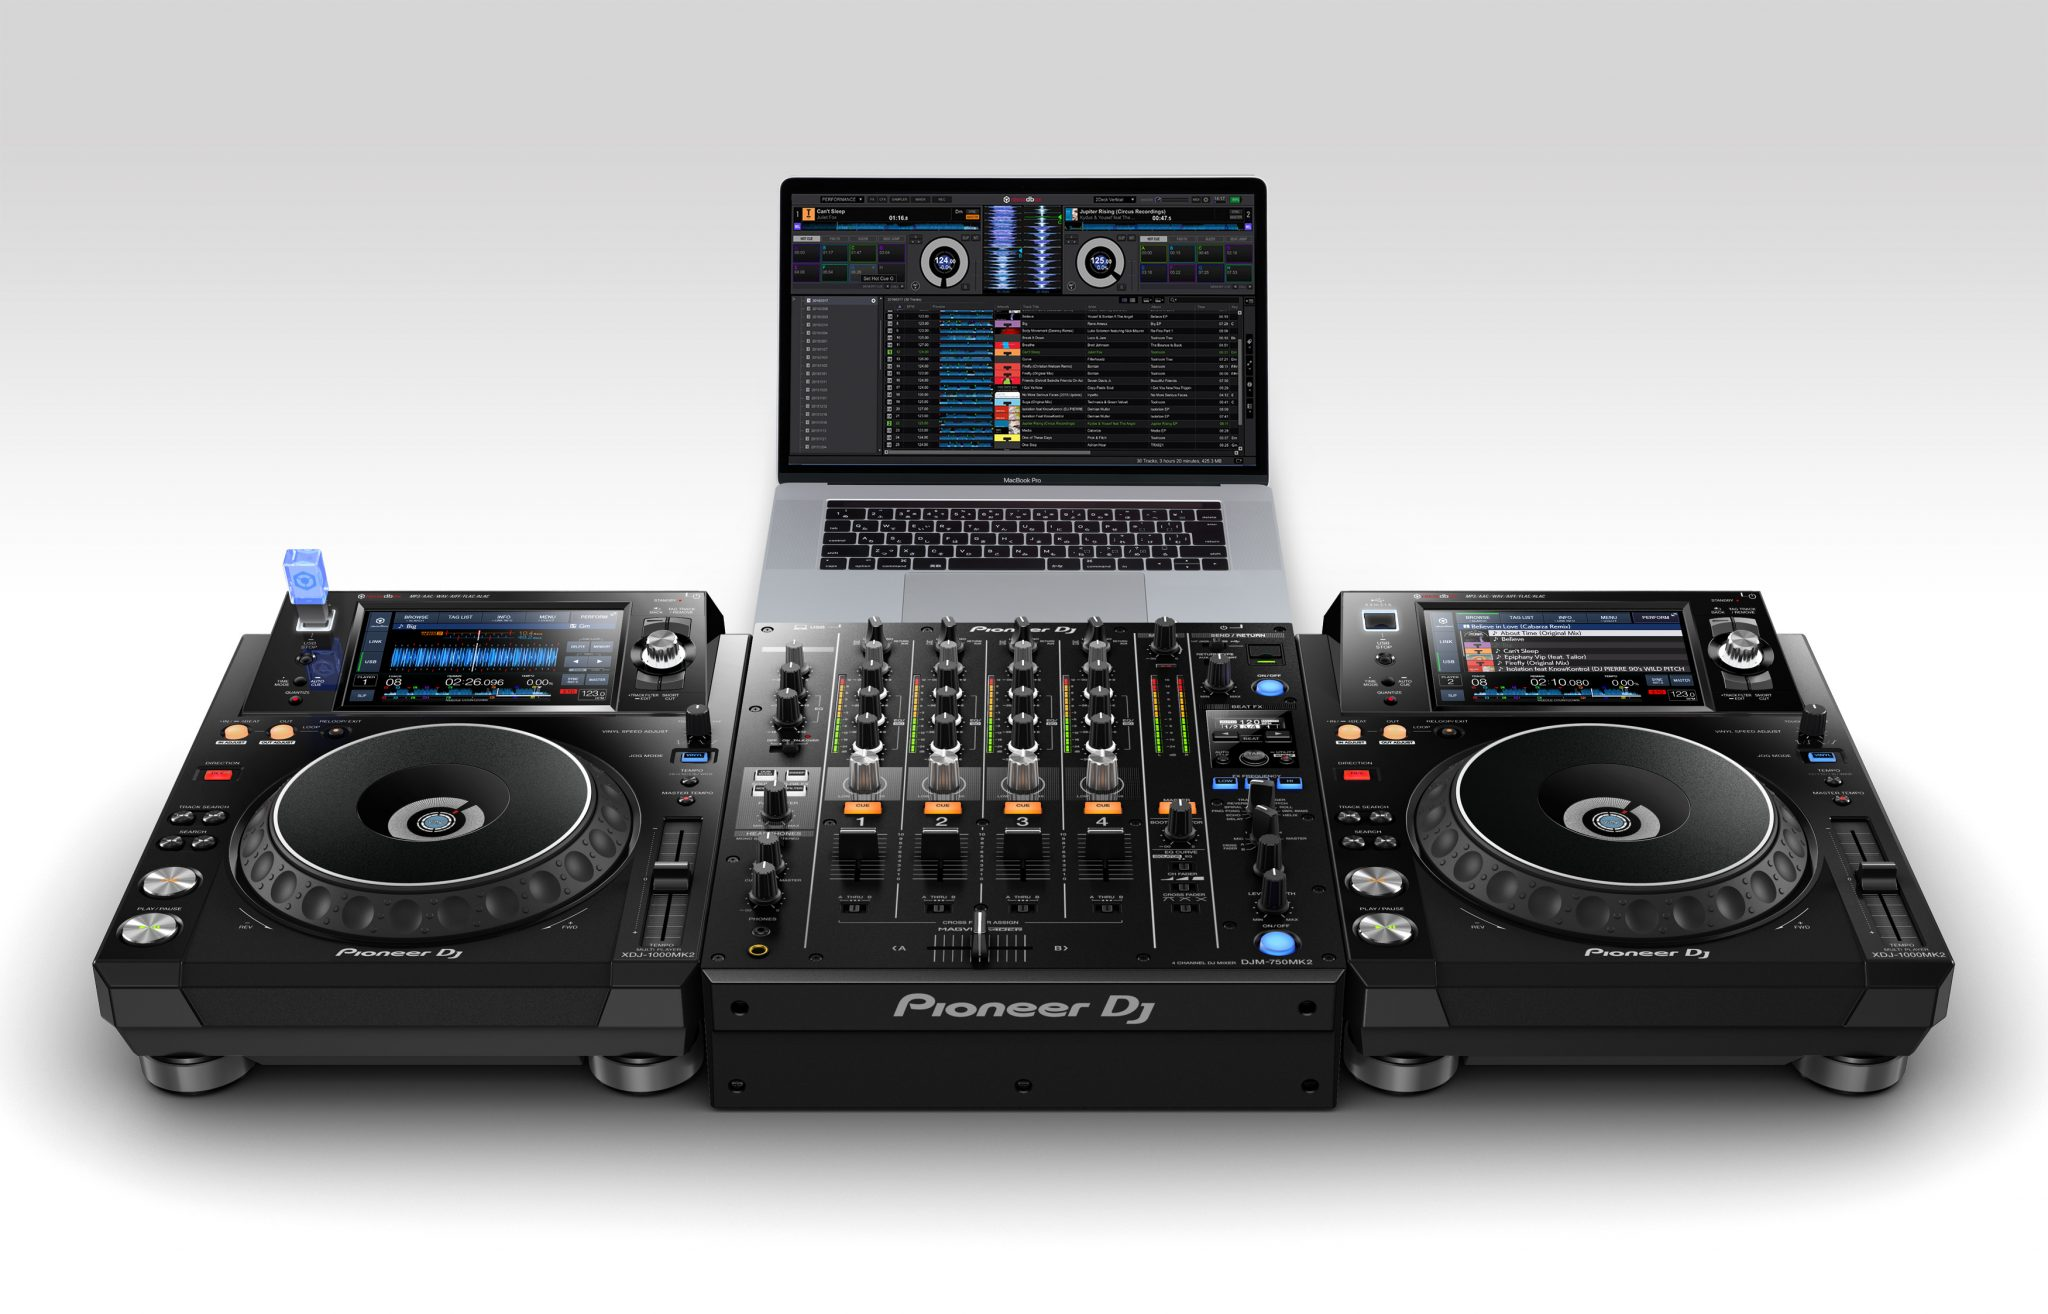 DJM-750MK2_XDJ-1000MK2_set_A_USB_low_0728